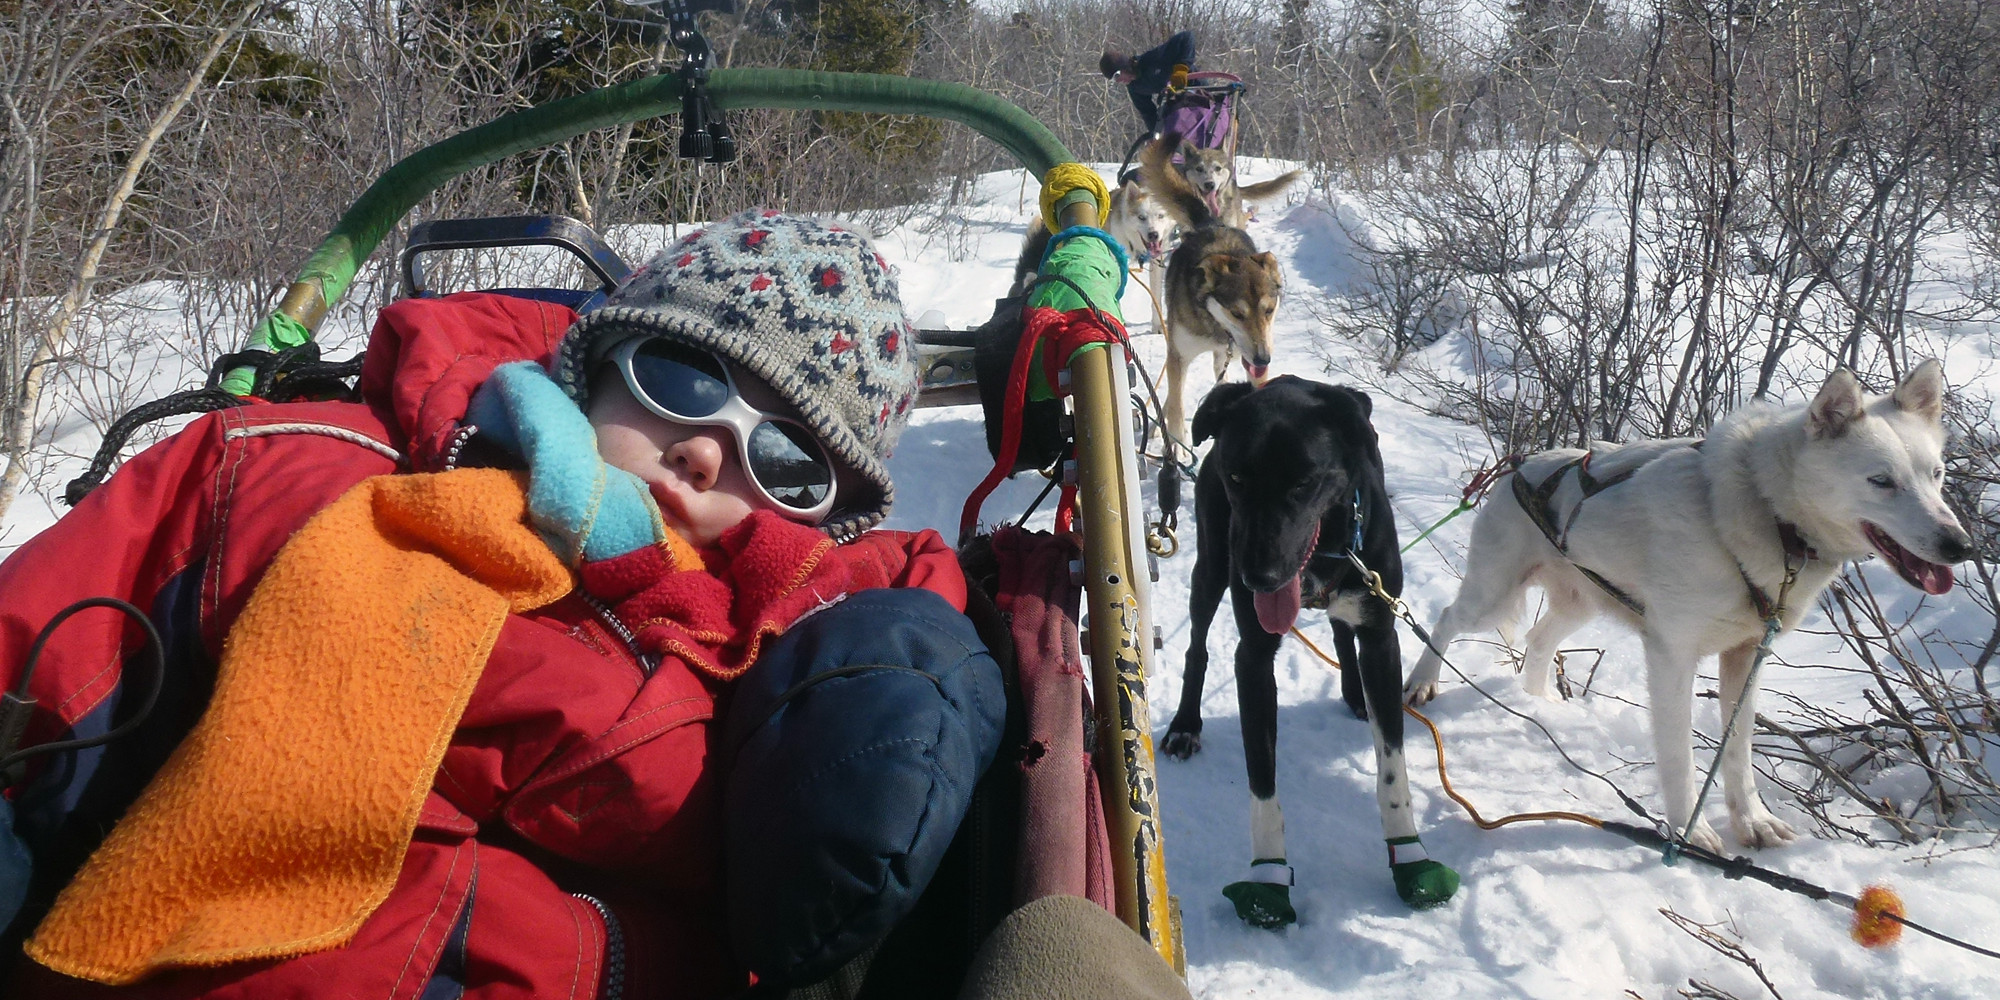 Into the Wild Adventures, dog sledding tours and winter adventures in the Yukon Territory, Canada - About Us